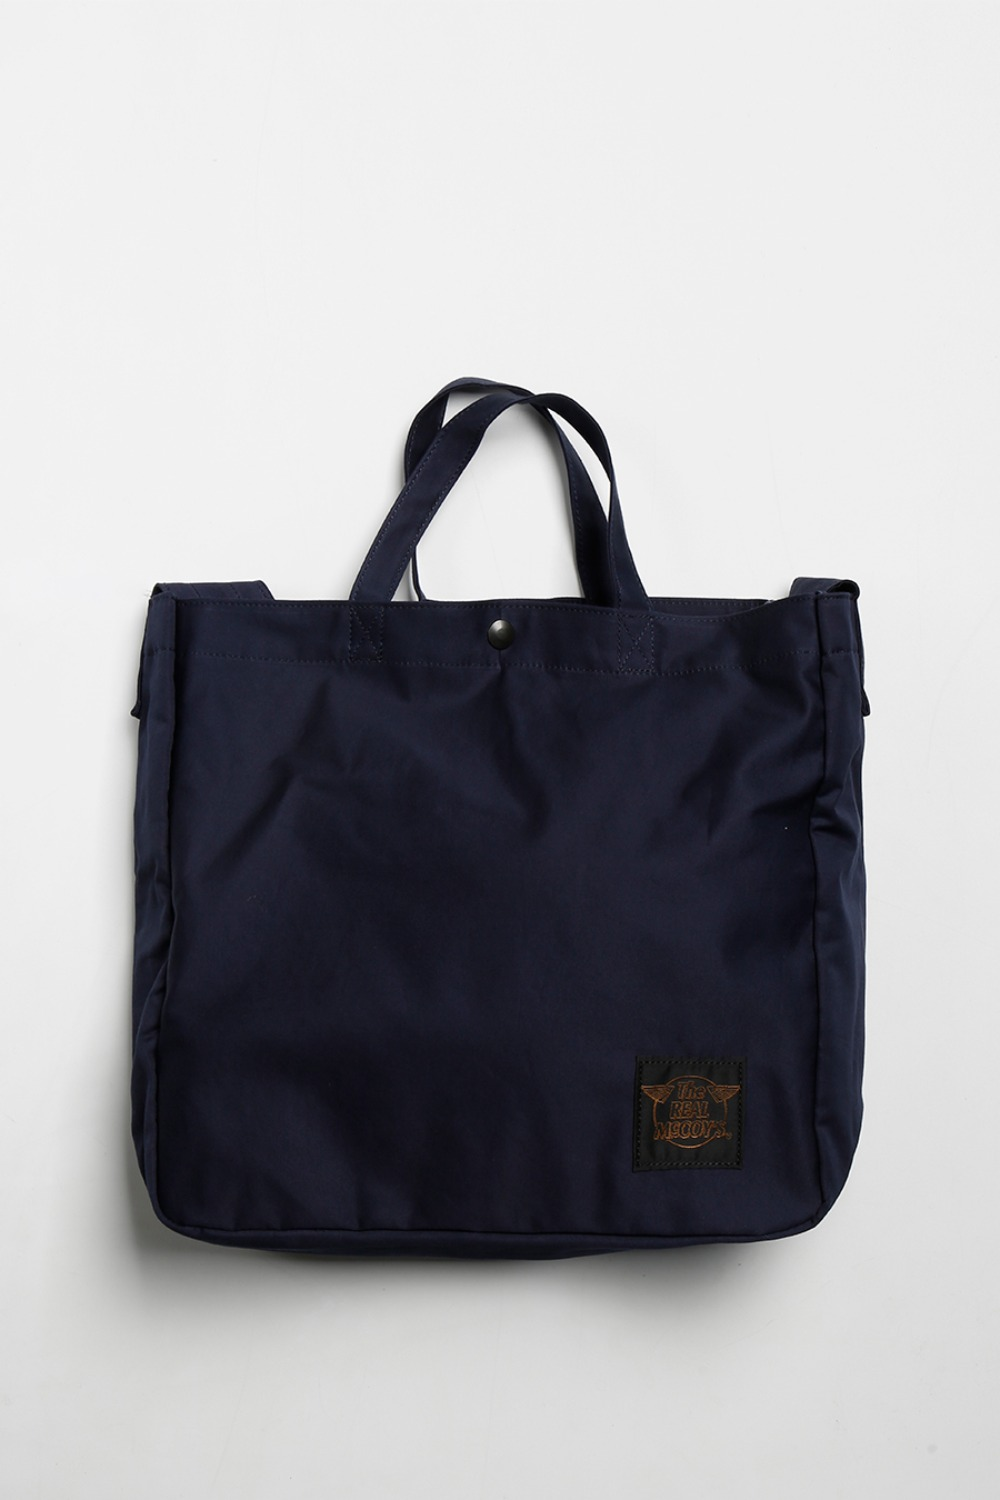 REAL MCCOY'S ECO SHOULDER BAG NAVY